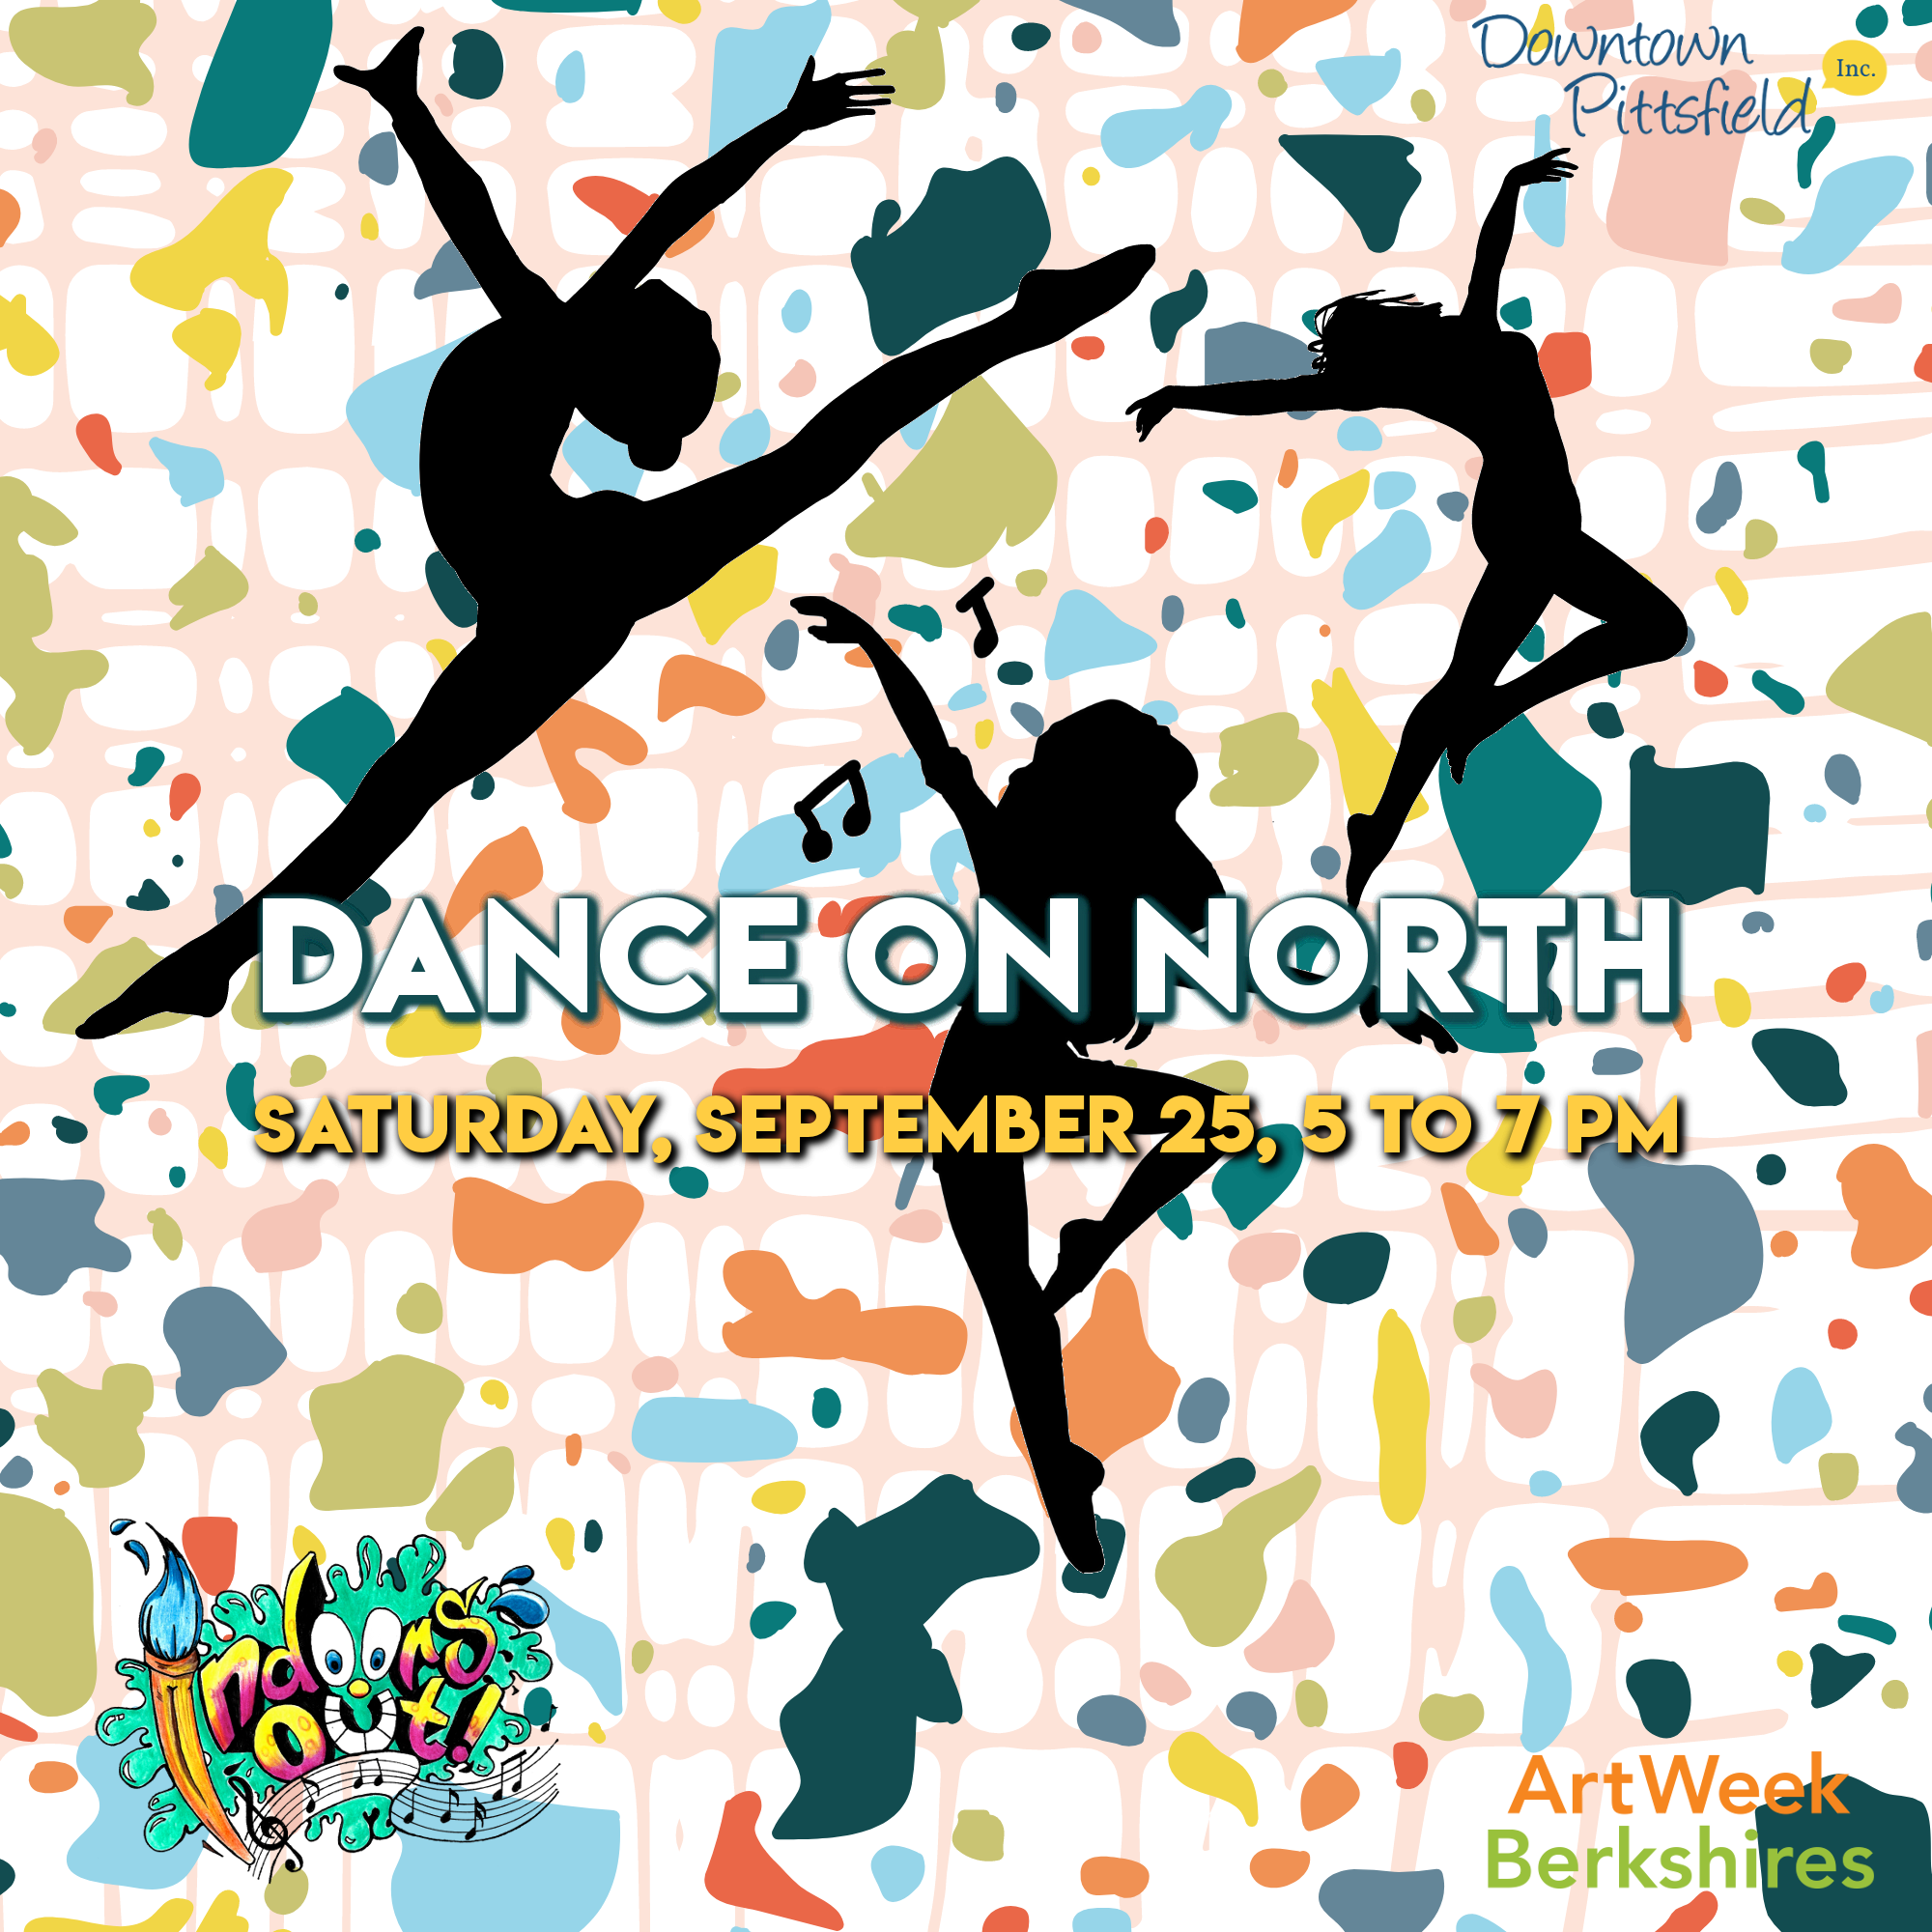 Indoors Out! Dance on North, Pittsfield MA